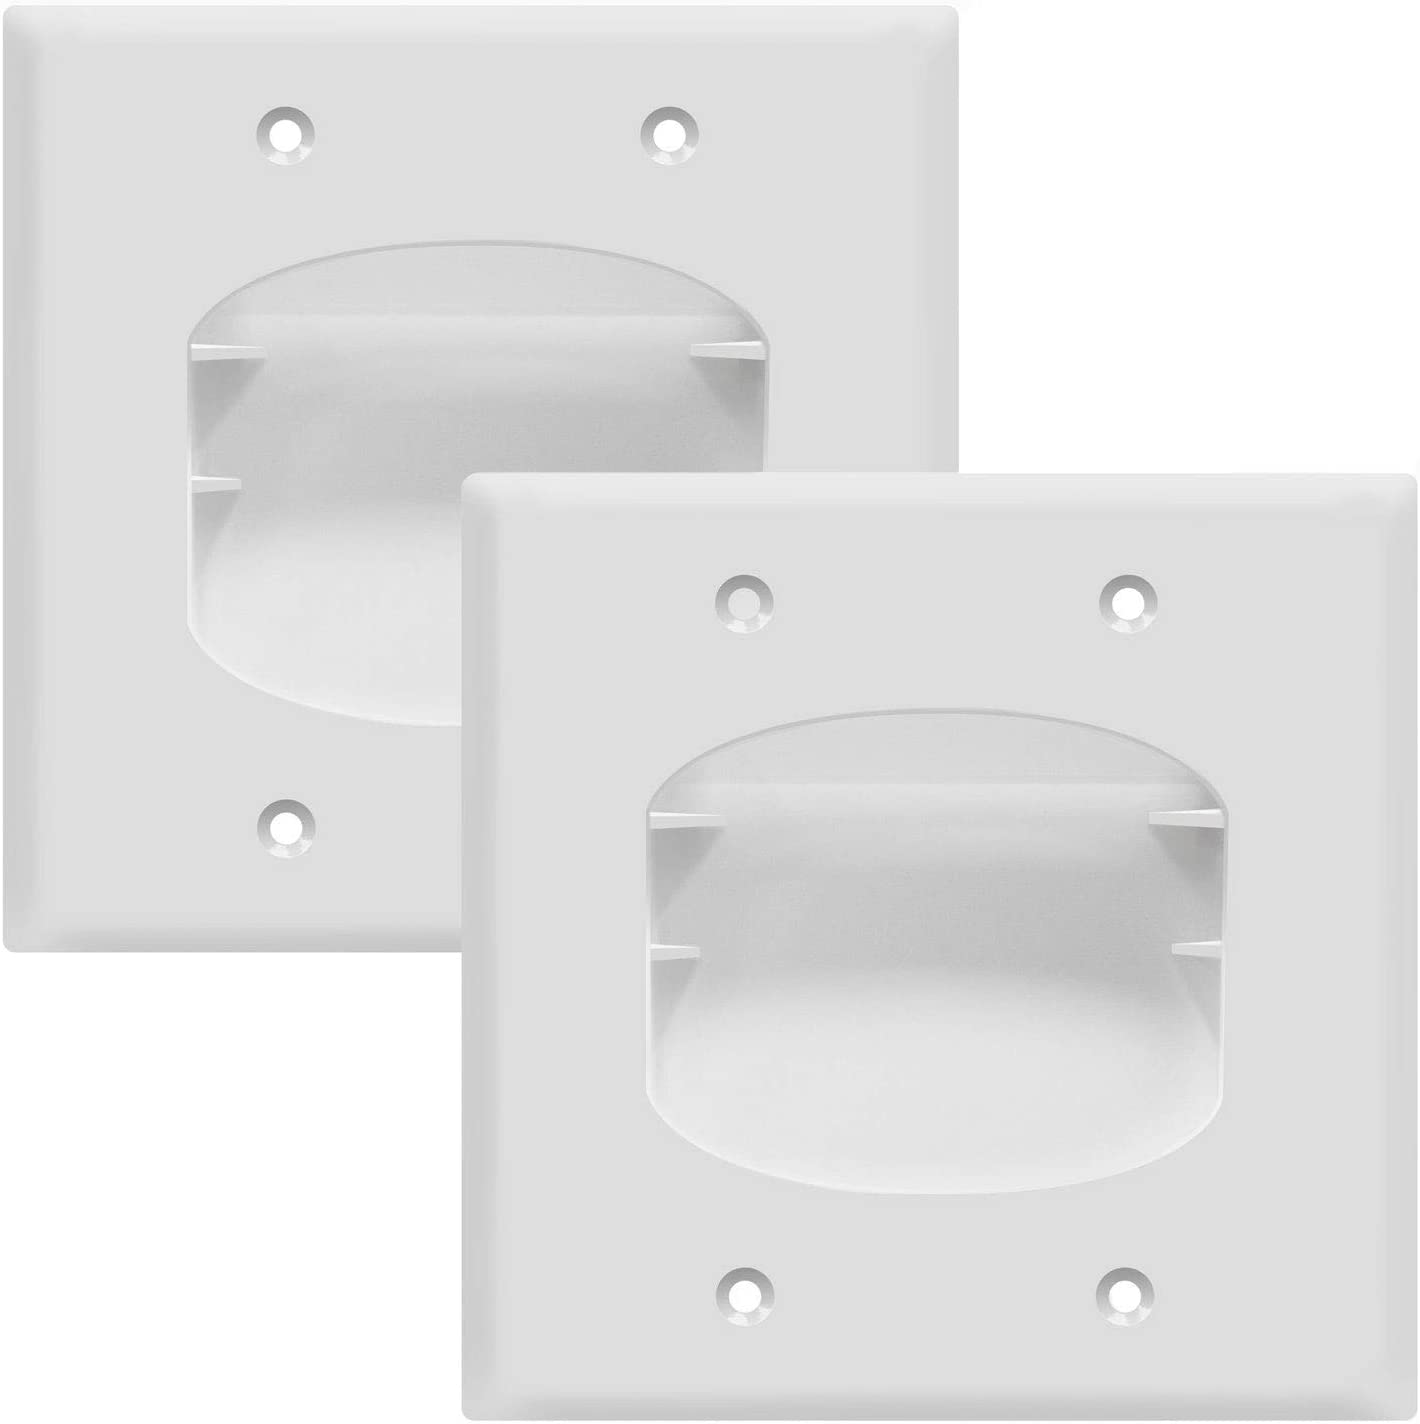 TOPGREENER Recessed Low Voltage Cable Wall Plate for Home Theaters, Size 2-Gang 4.50